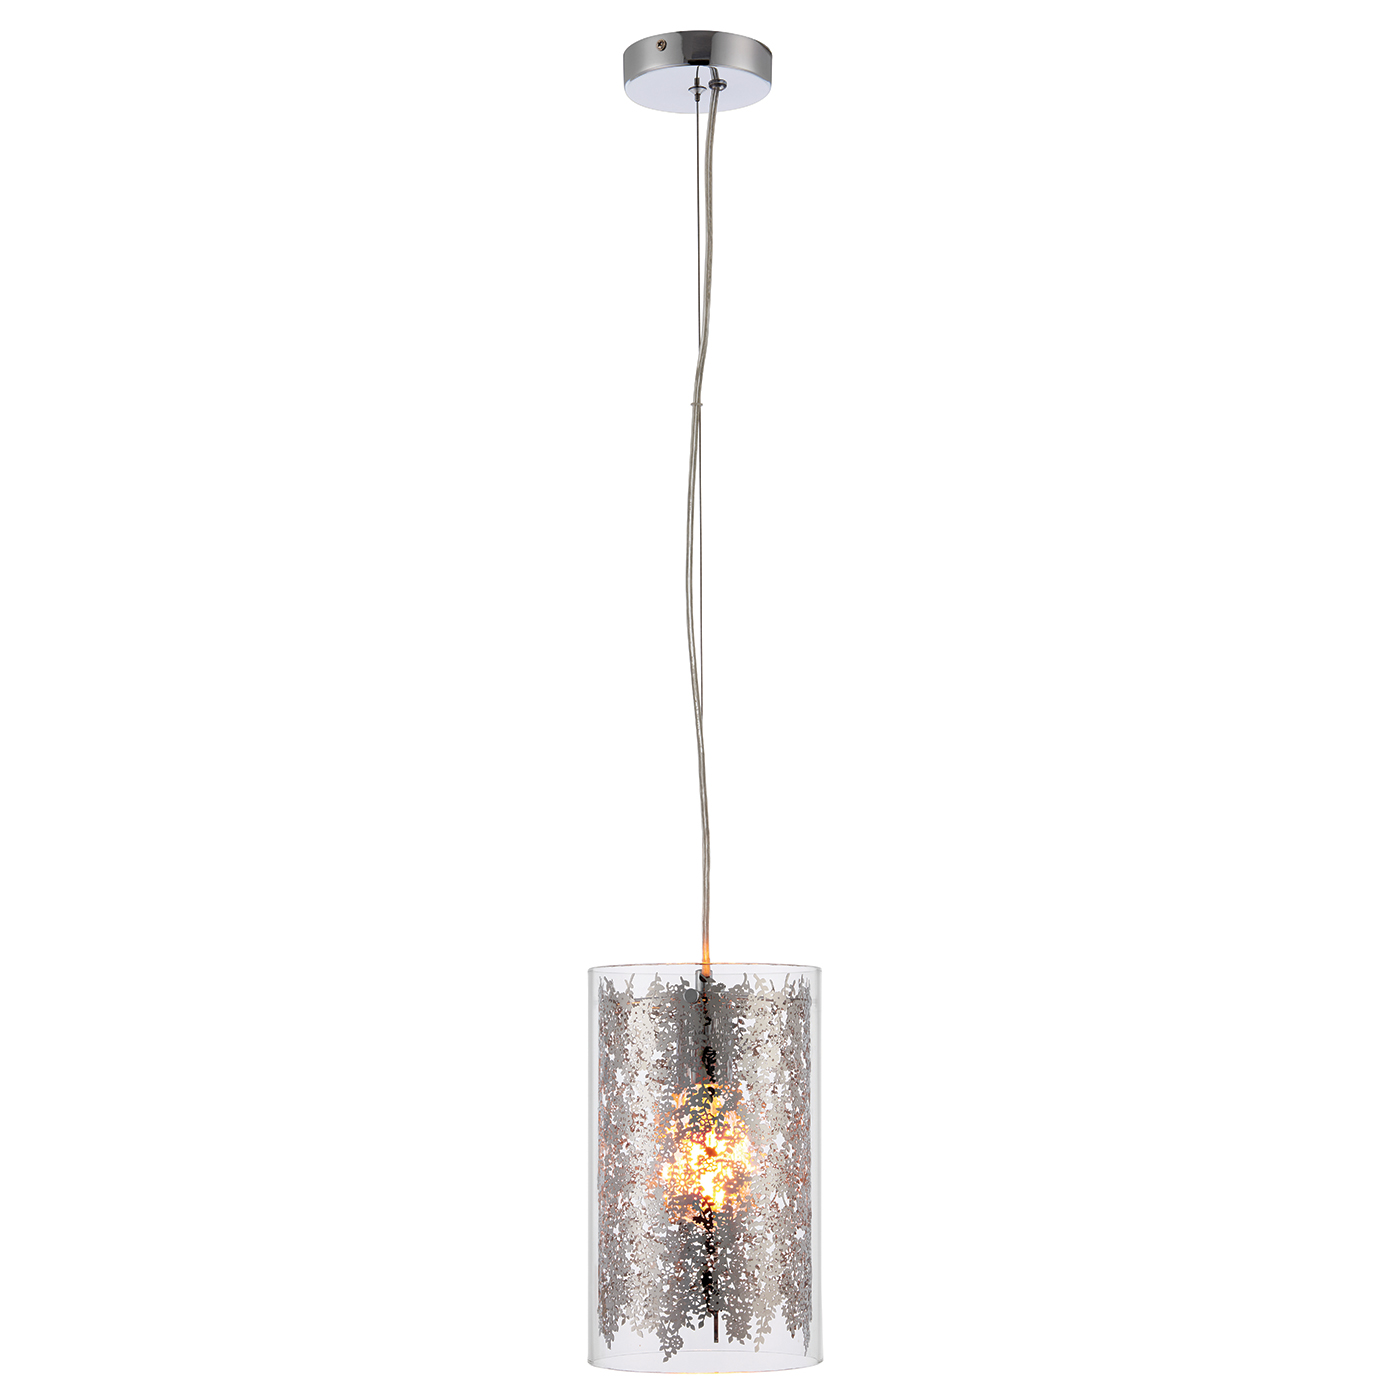 Endon Lacy pendant 1x 40W Clear glass & chrome effect plate